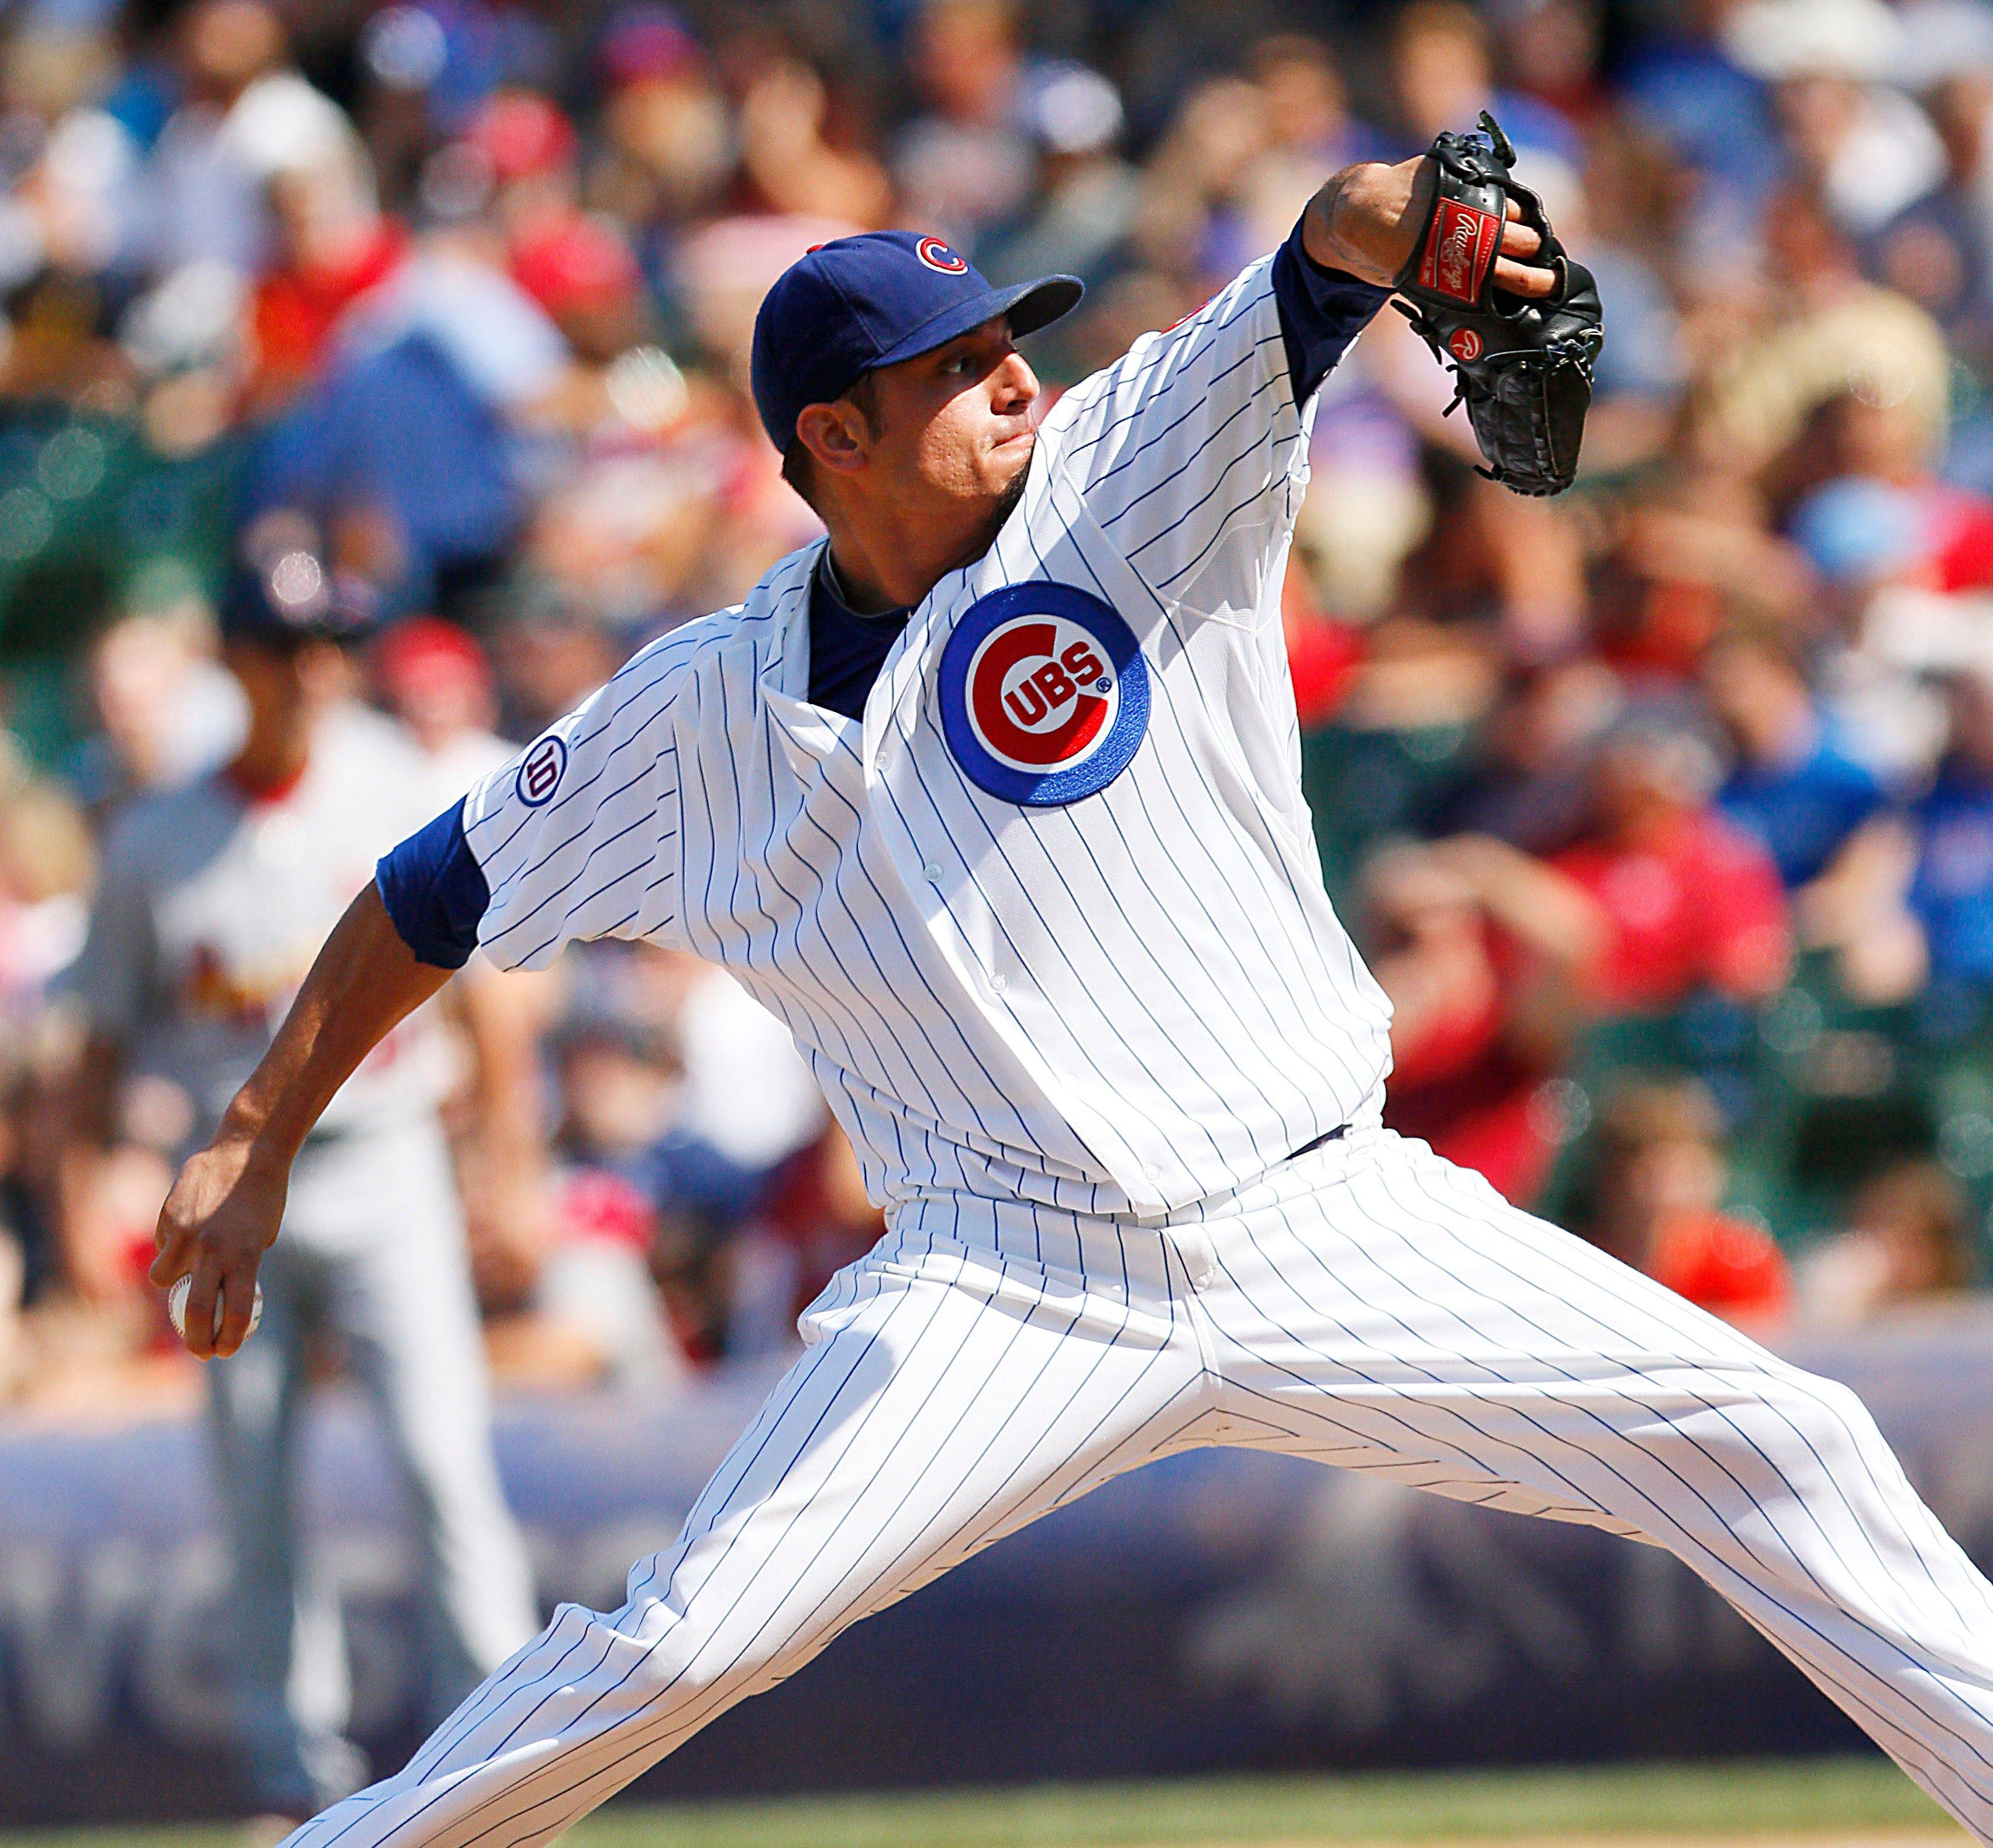 Starter Matt Garza scattered five hits, struck out 8 and won at Wrigley Field for the first time since June 27 as the Cubs topped the Cards 3-0.